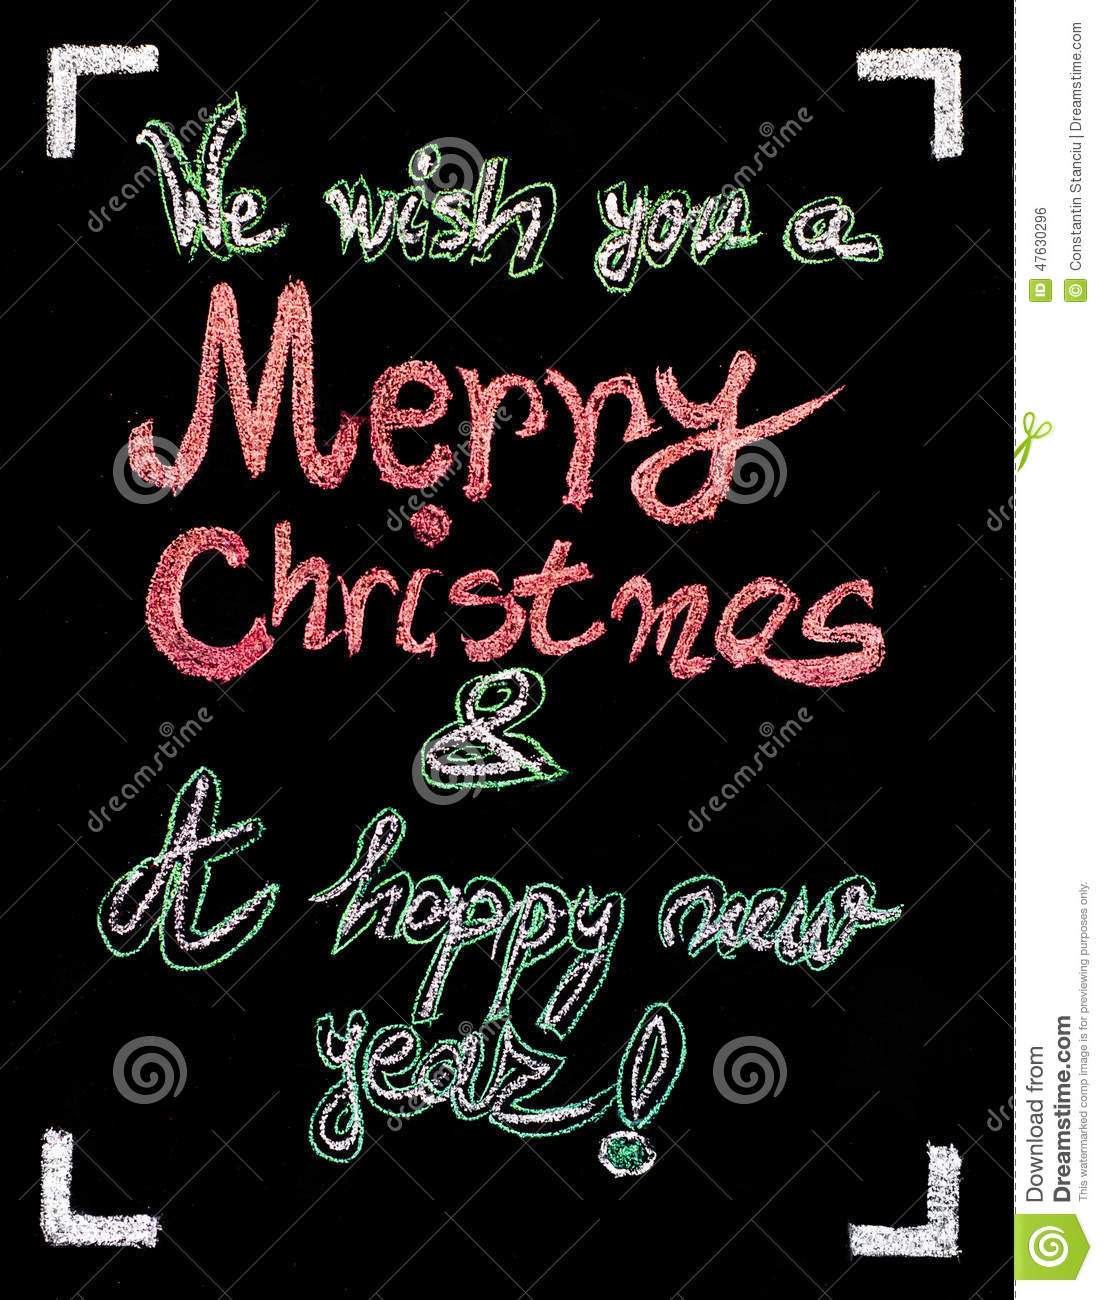 wish you a merry christmas song words